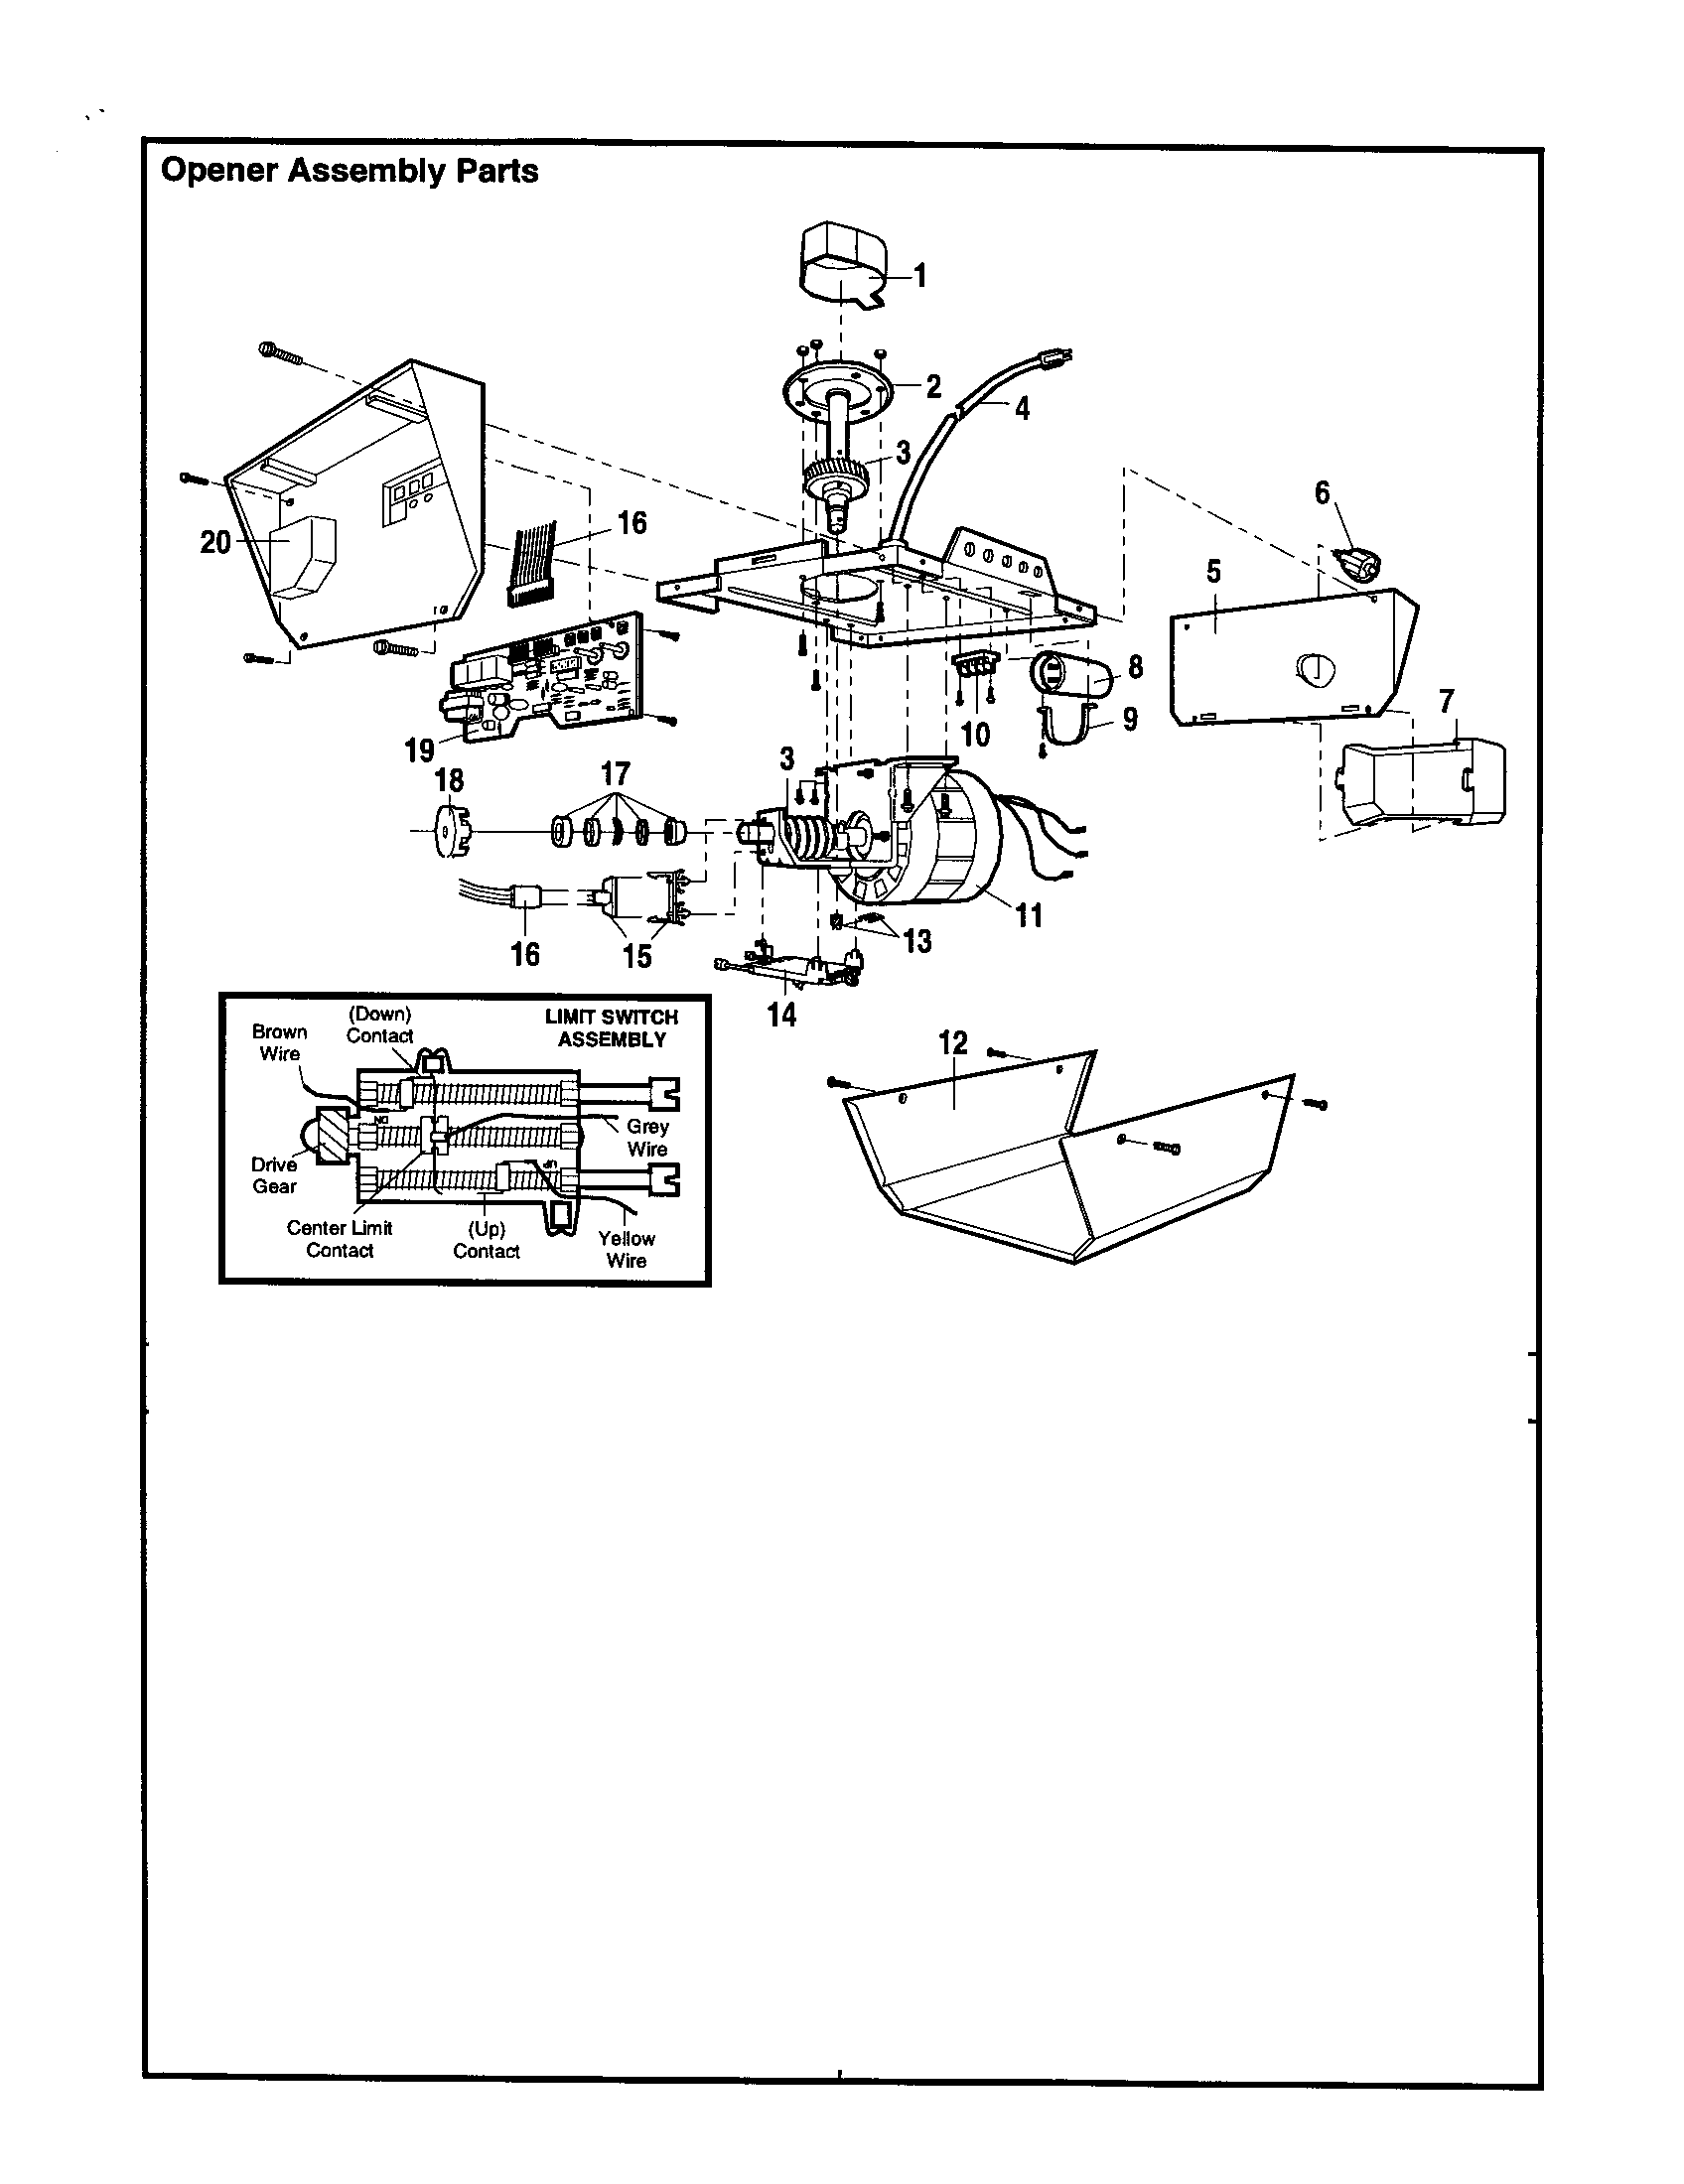 Opener Assembly Diagram Amp Parts List For Model Srt